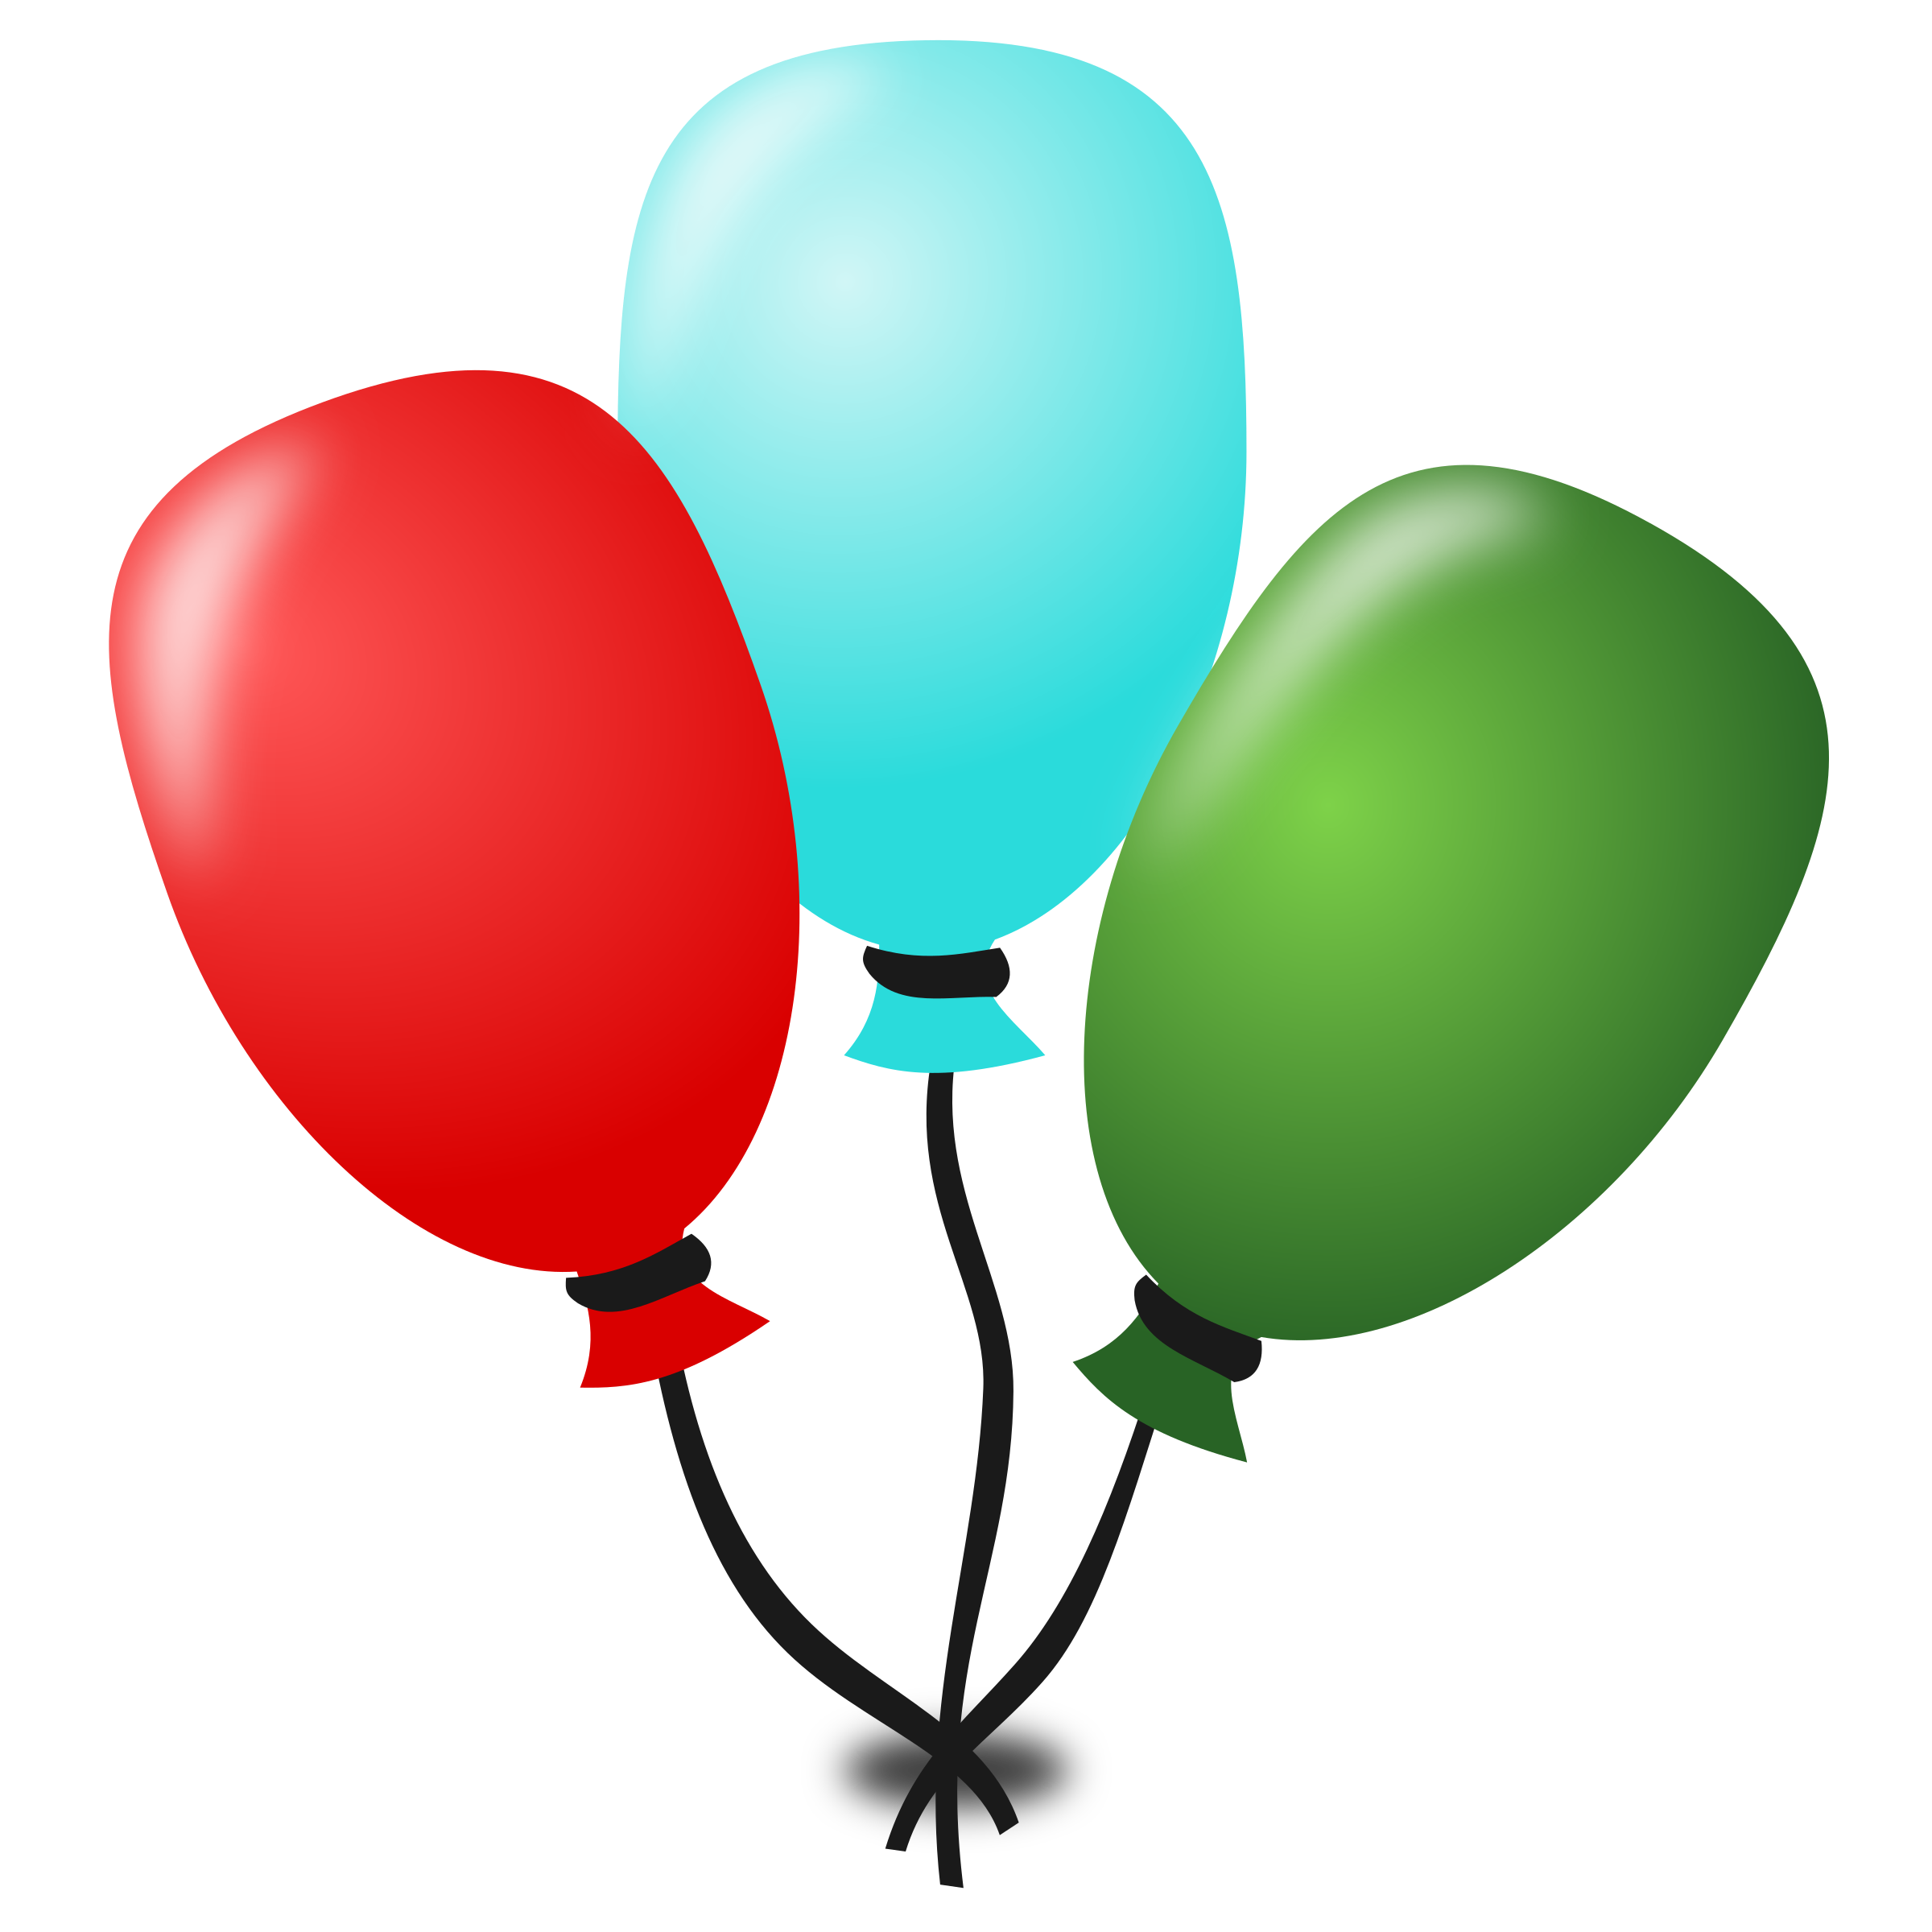 Clipart birthday icon. Big image png